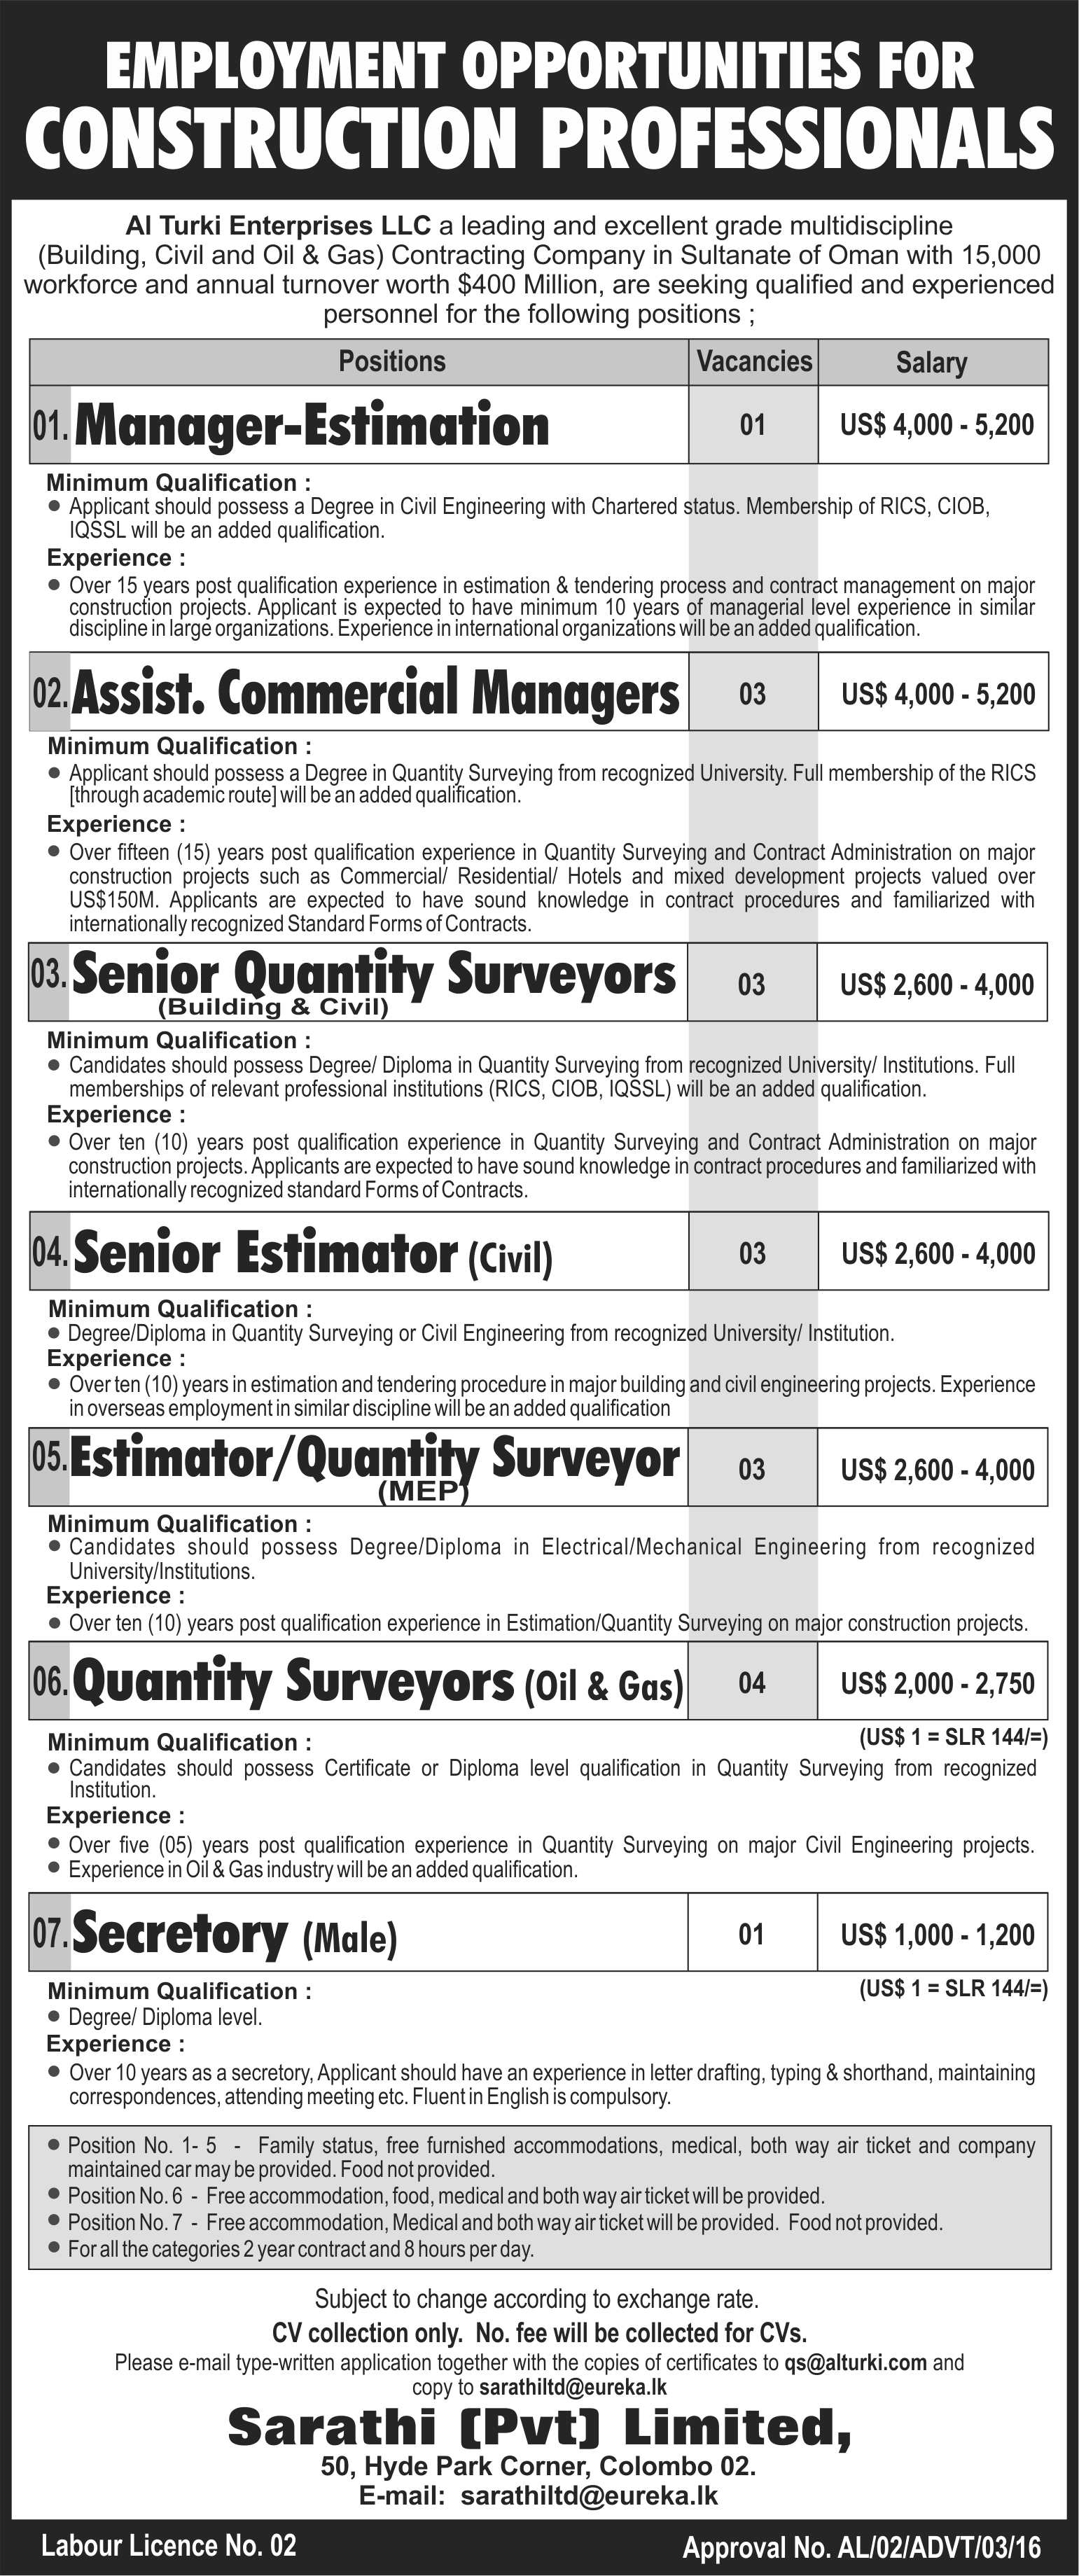 Al turki is seeking qualified and experienced Construction